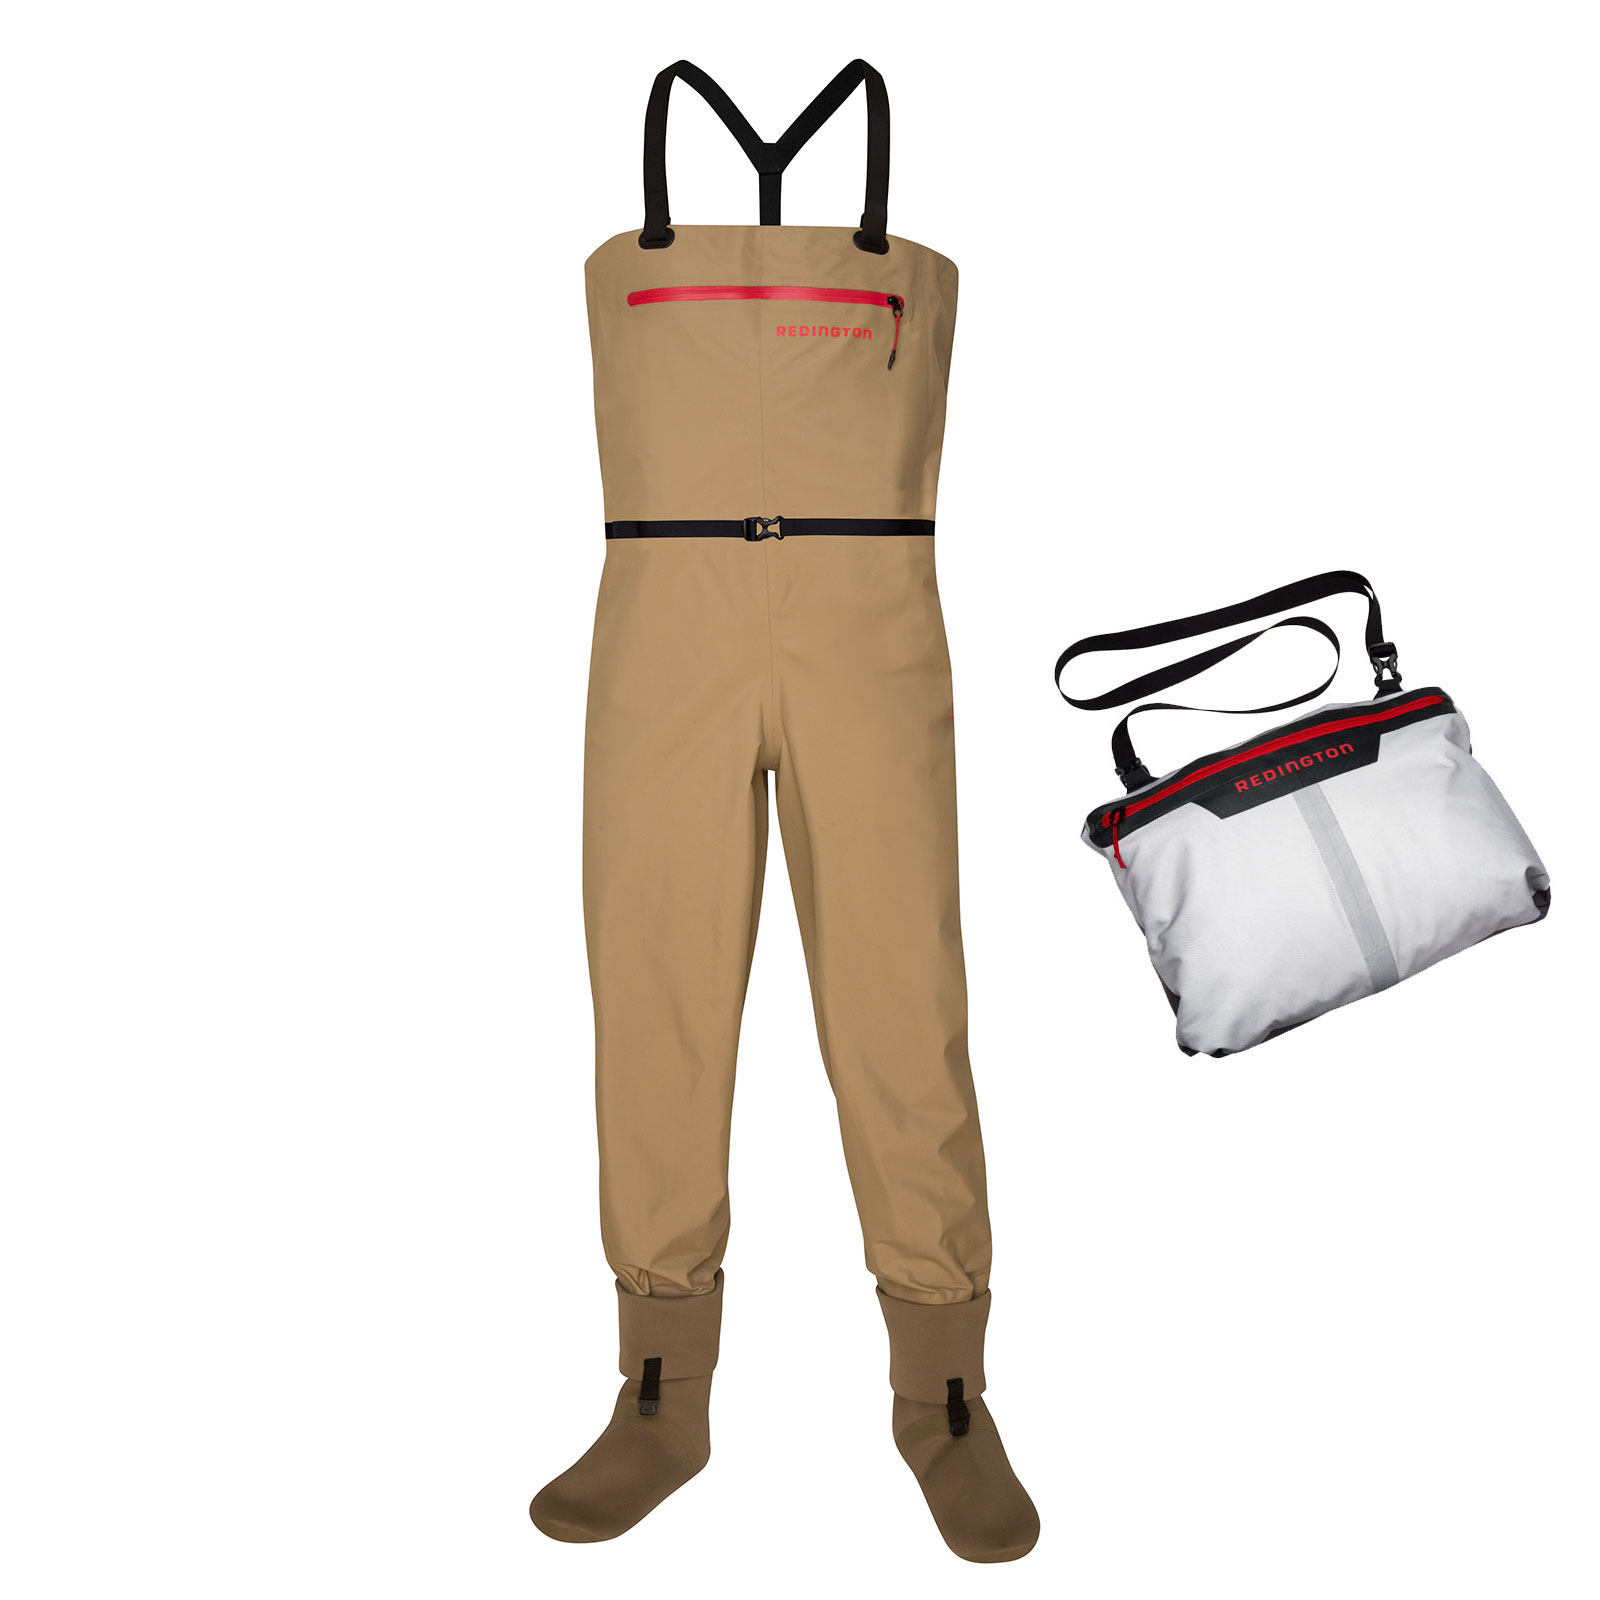 Sonic-Pro Packable Waders